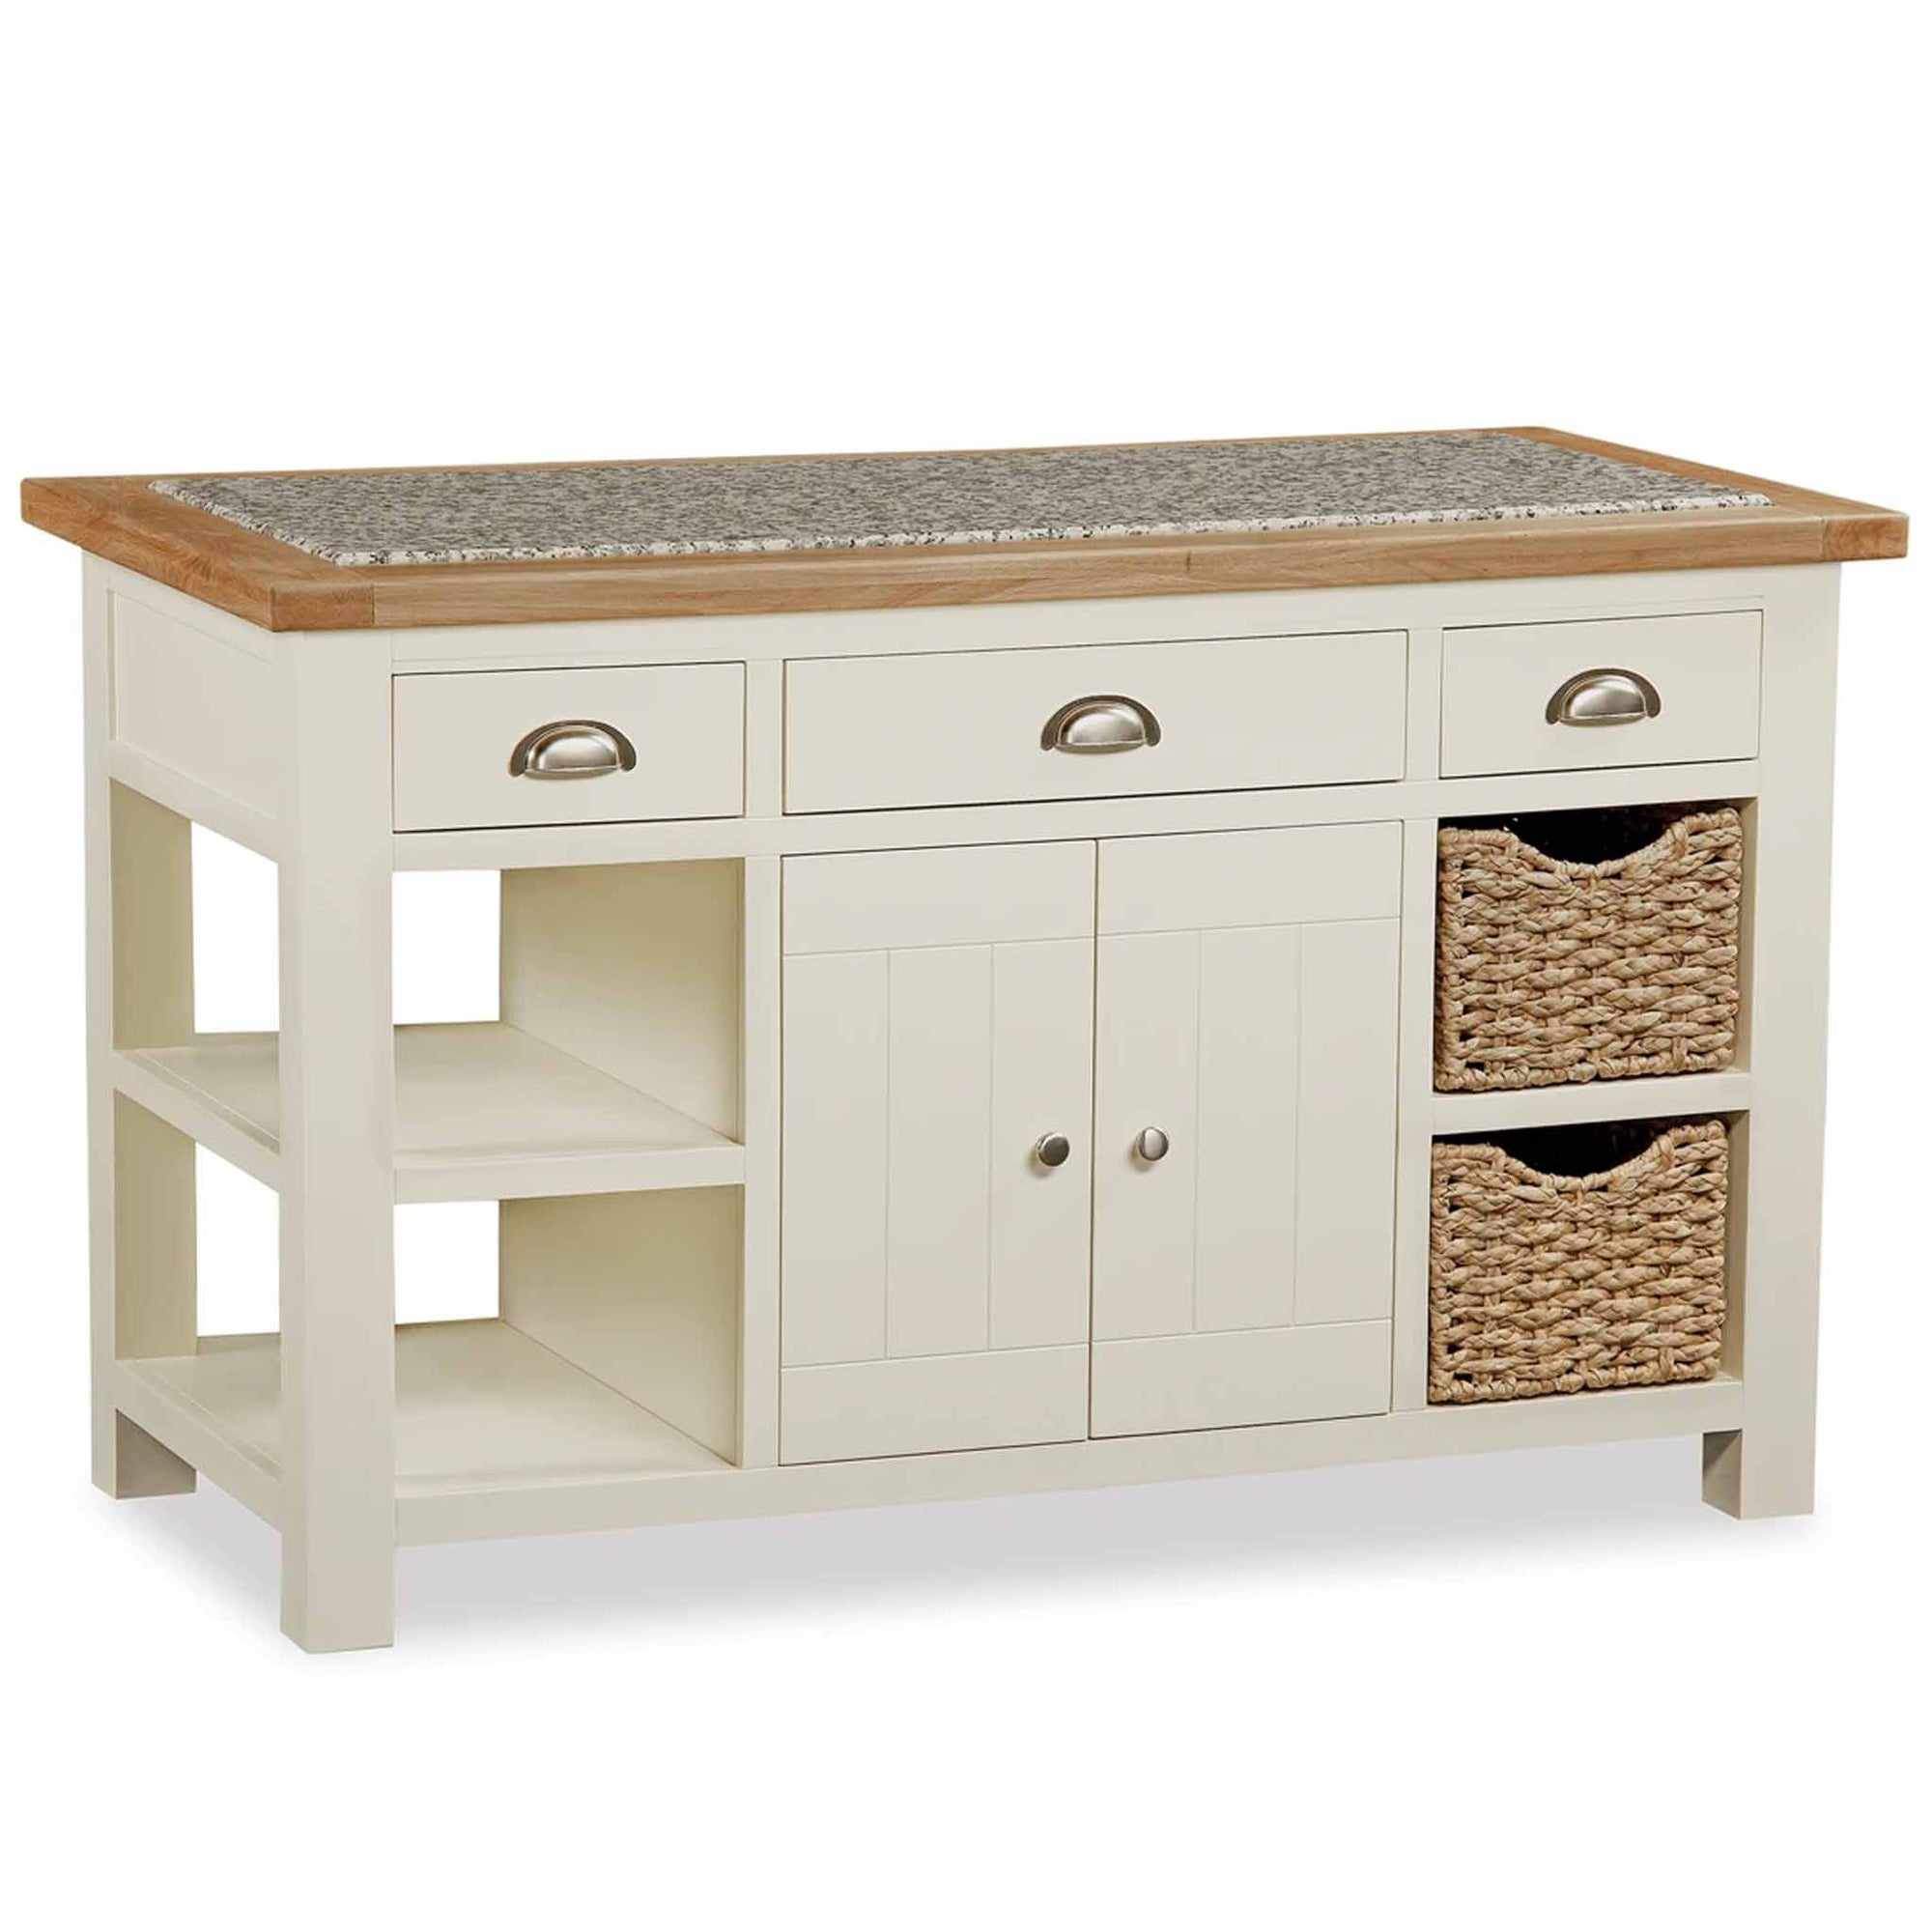 The Daymer Cream Oak Top Kitchen Island Breakfast Bar from Roseland Furniture